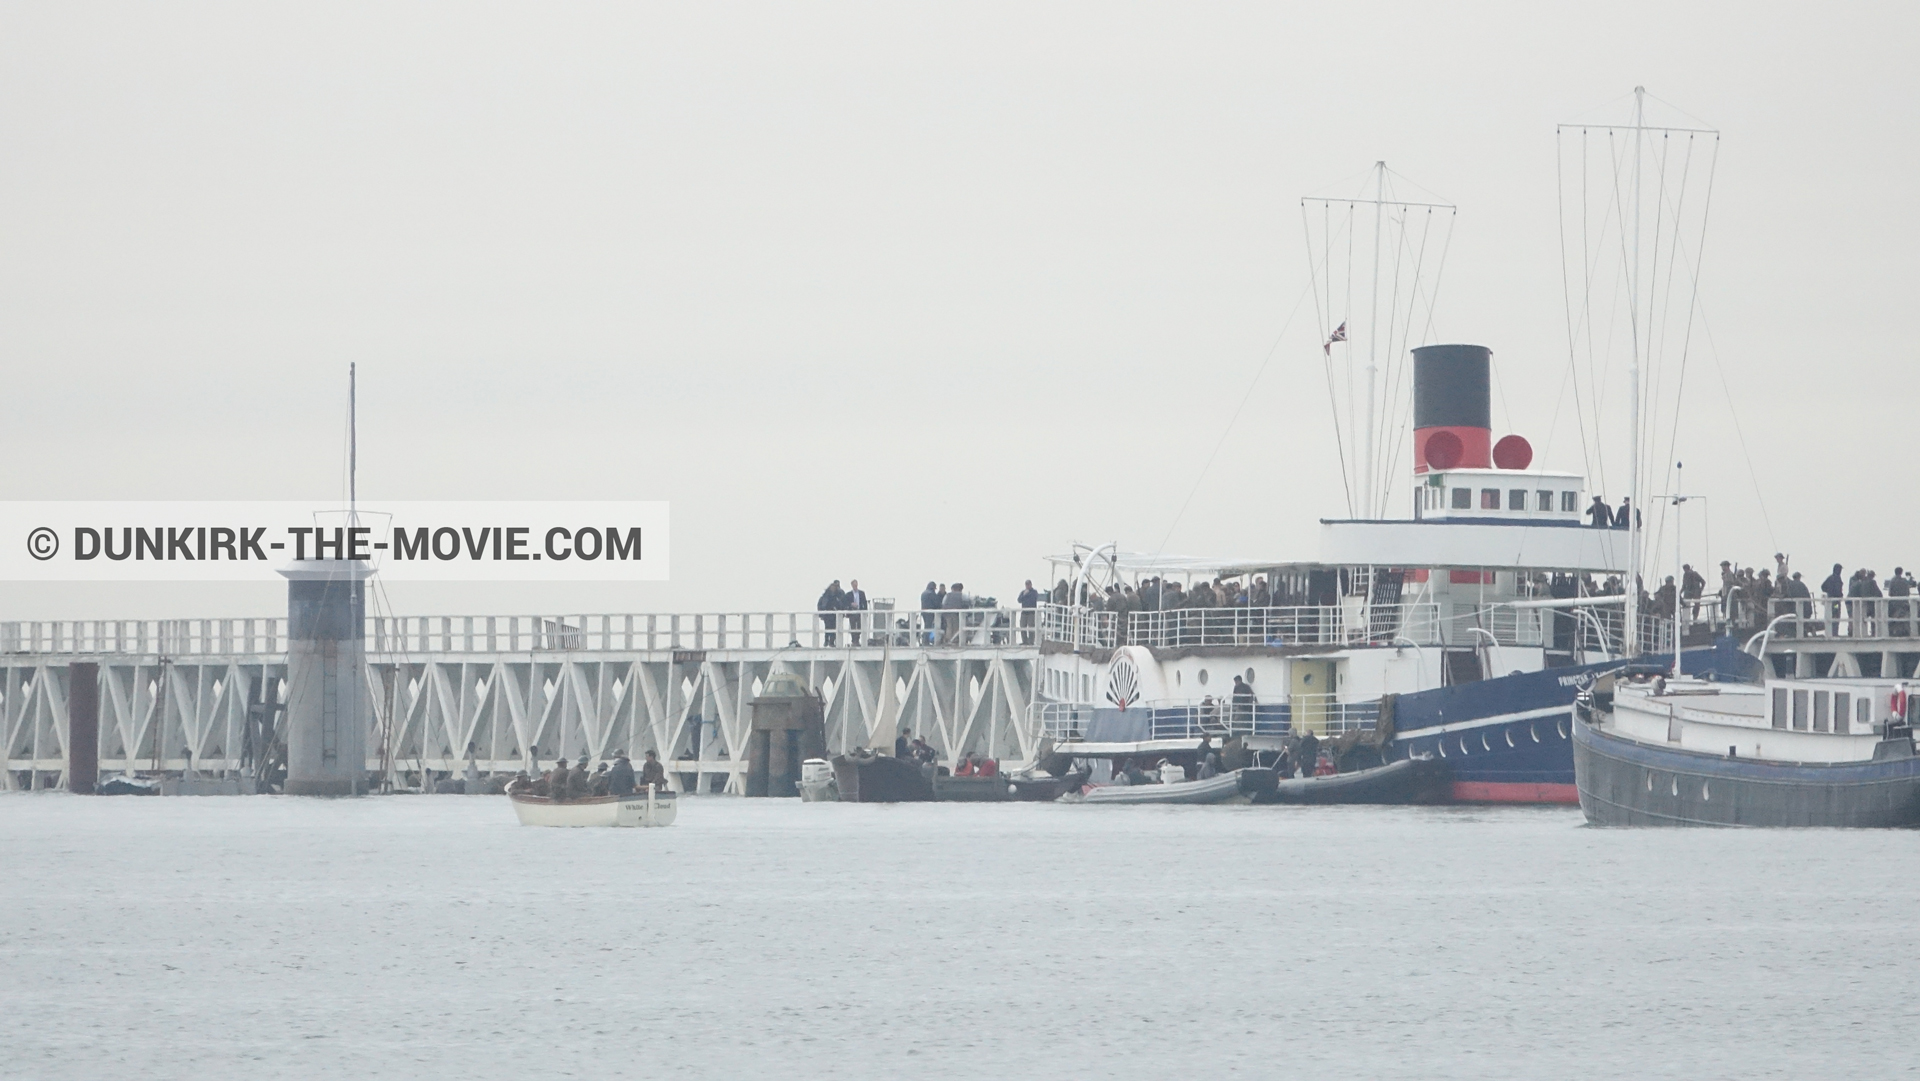 Picture with grey sky, EST pier, Princess Elizabeth,  from behind the scene of the Dunkirk movie by Nolan